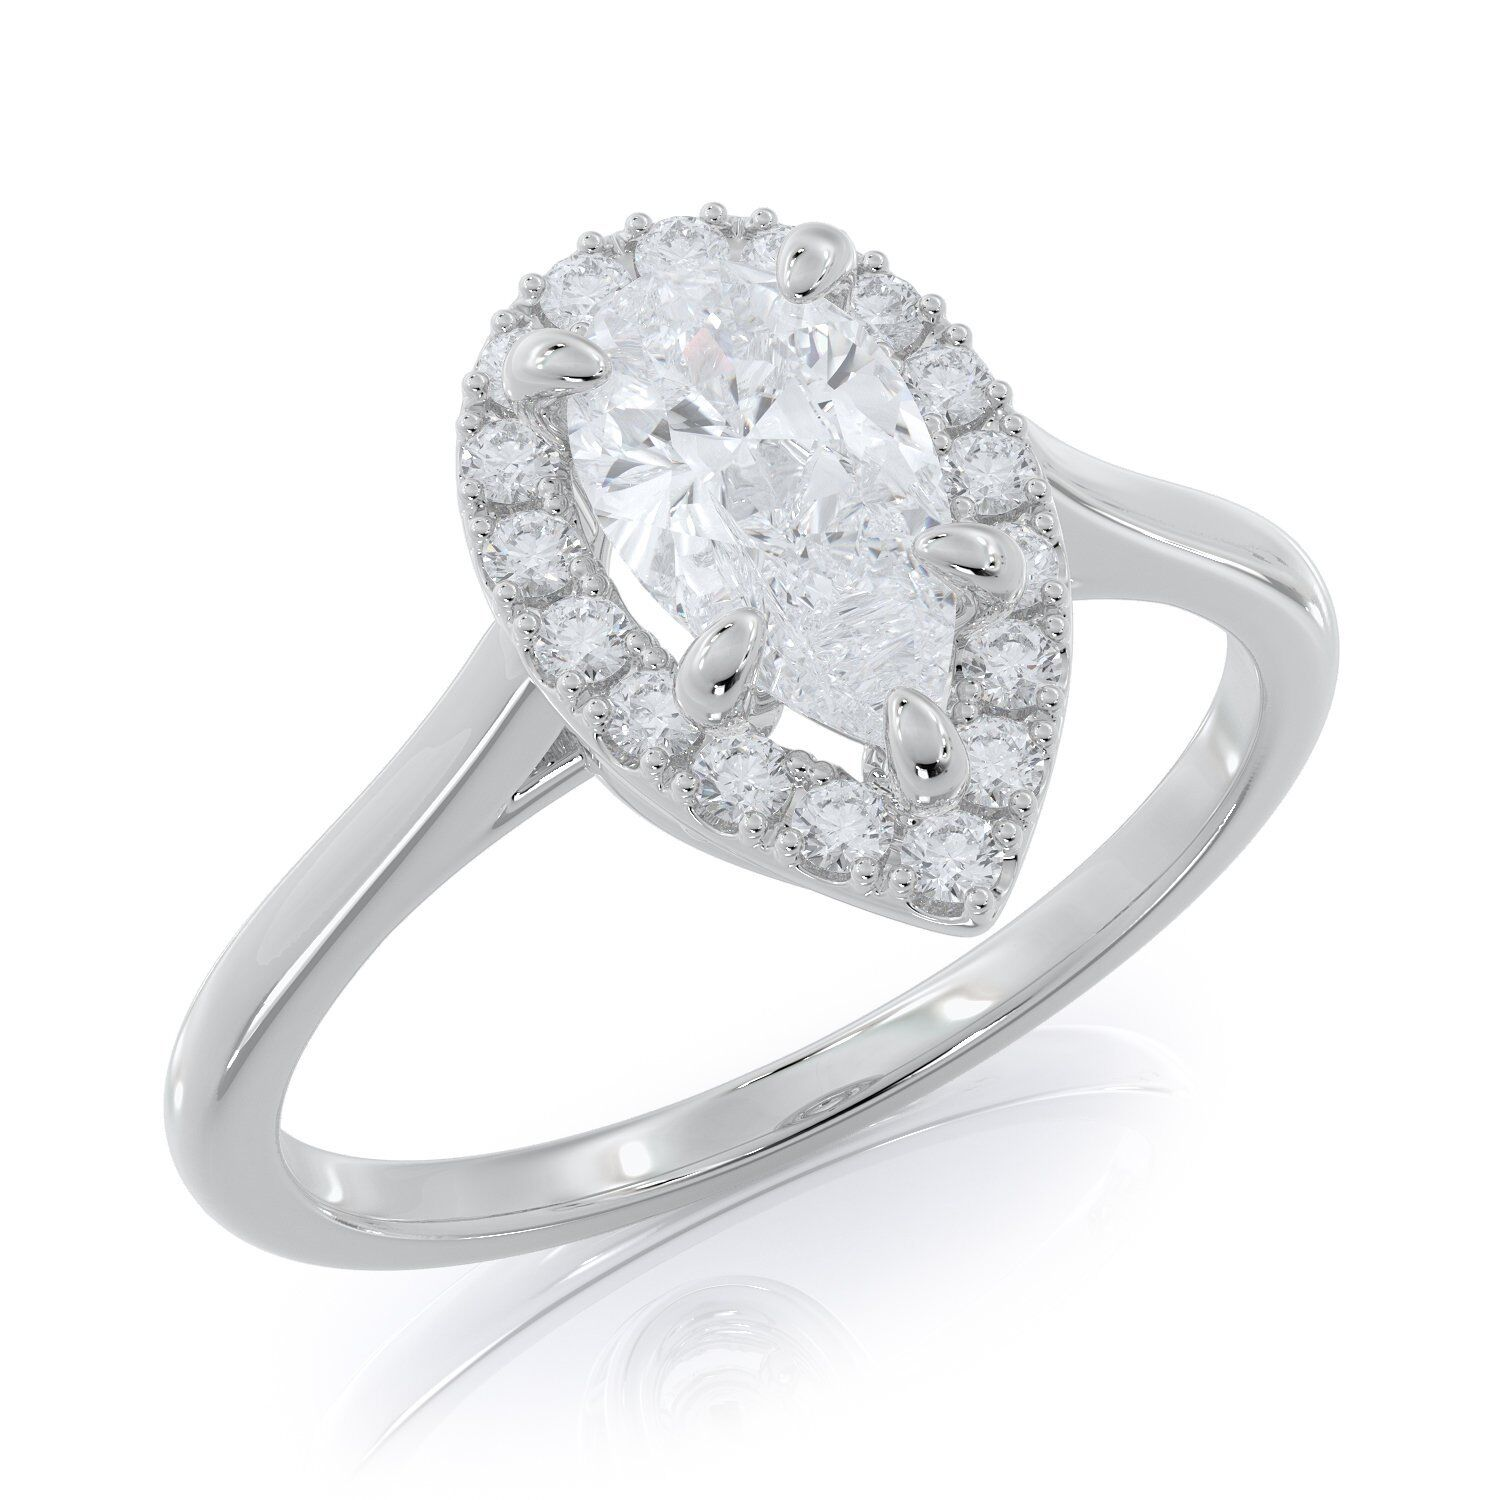 0.5 Ct Pear Natural Diamond Halo Engagement Ring 14K White gold